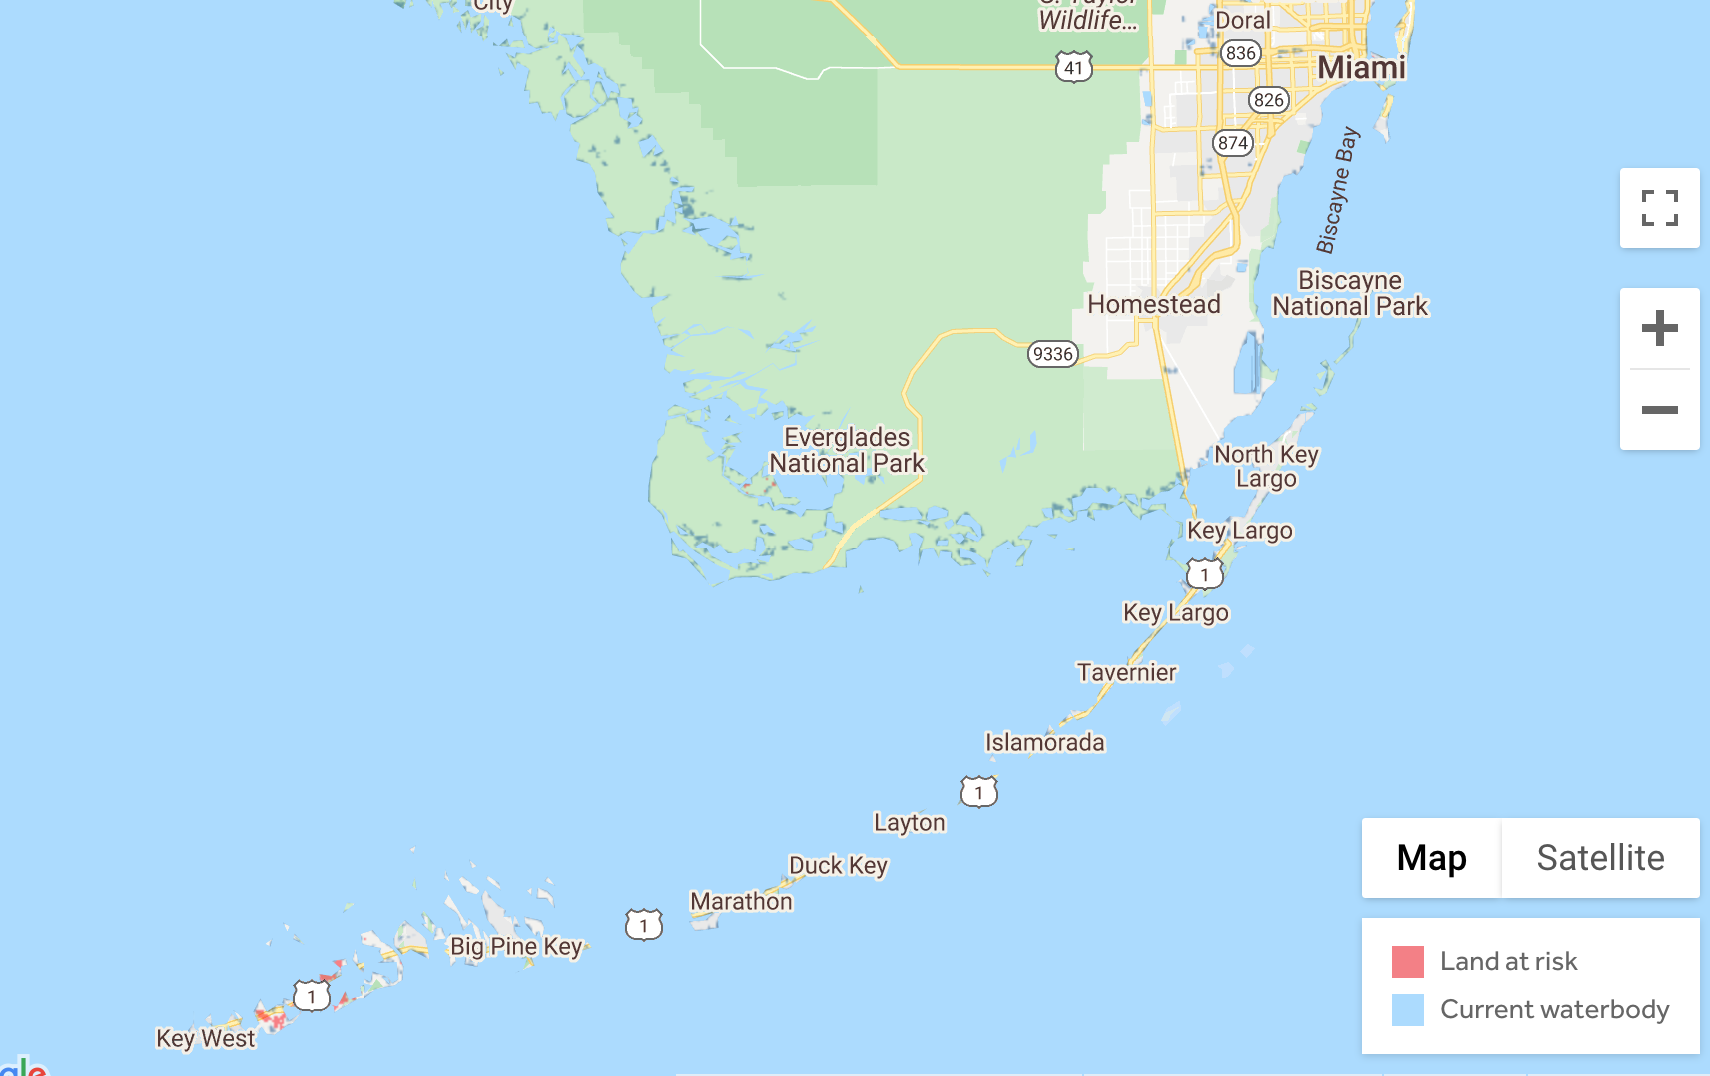 Image of southern Florida with sea level rise exposure with legacy data by 2050 in red